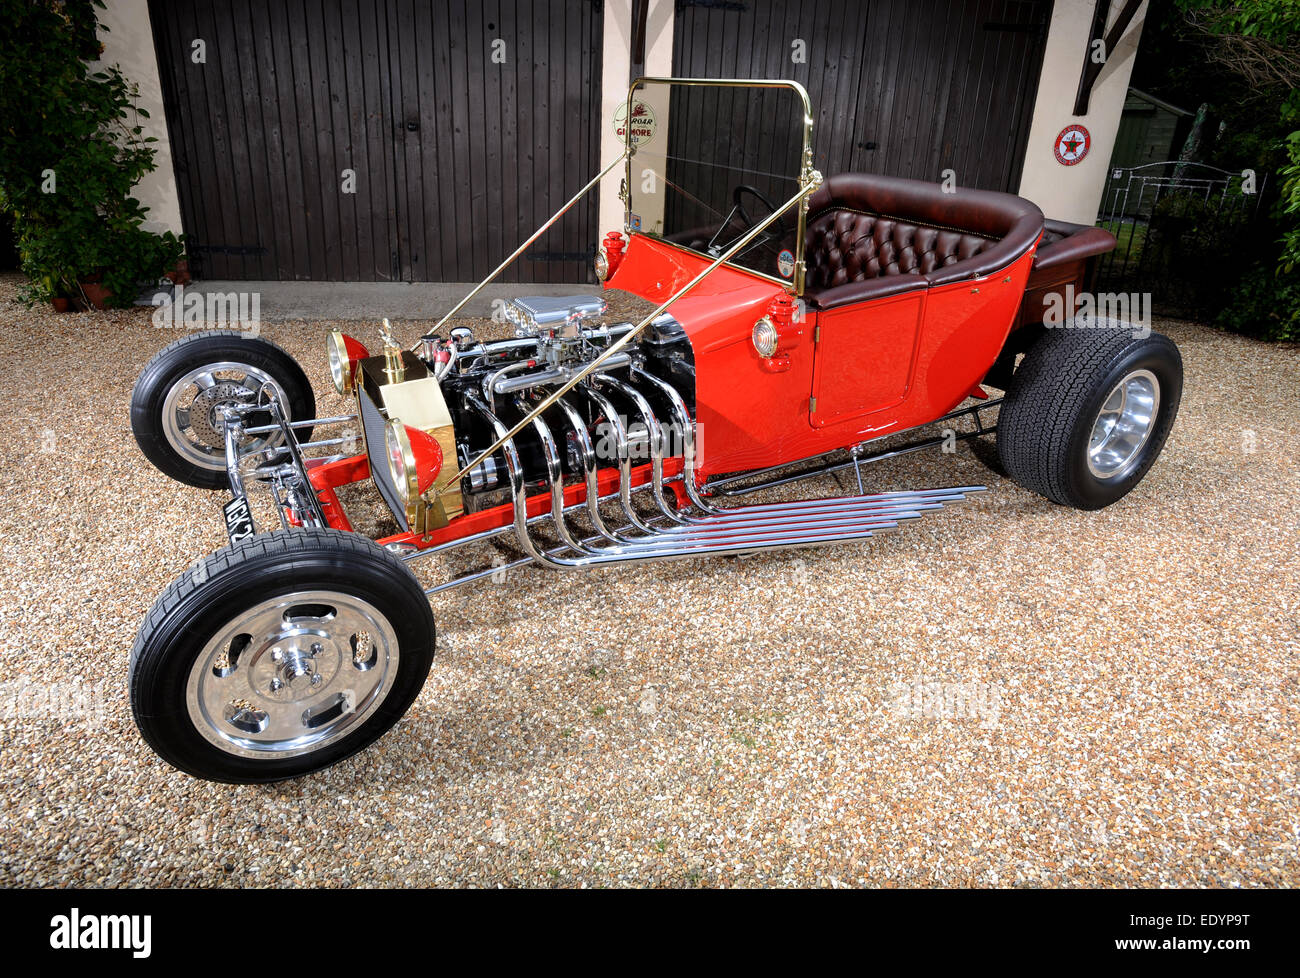 Car Museum Los Angeles >> Model T Hot Rod Stock Photos & Model T Hot Rod Stock Images - Alamy